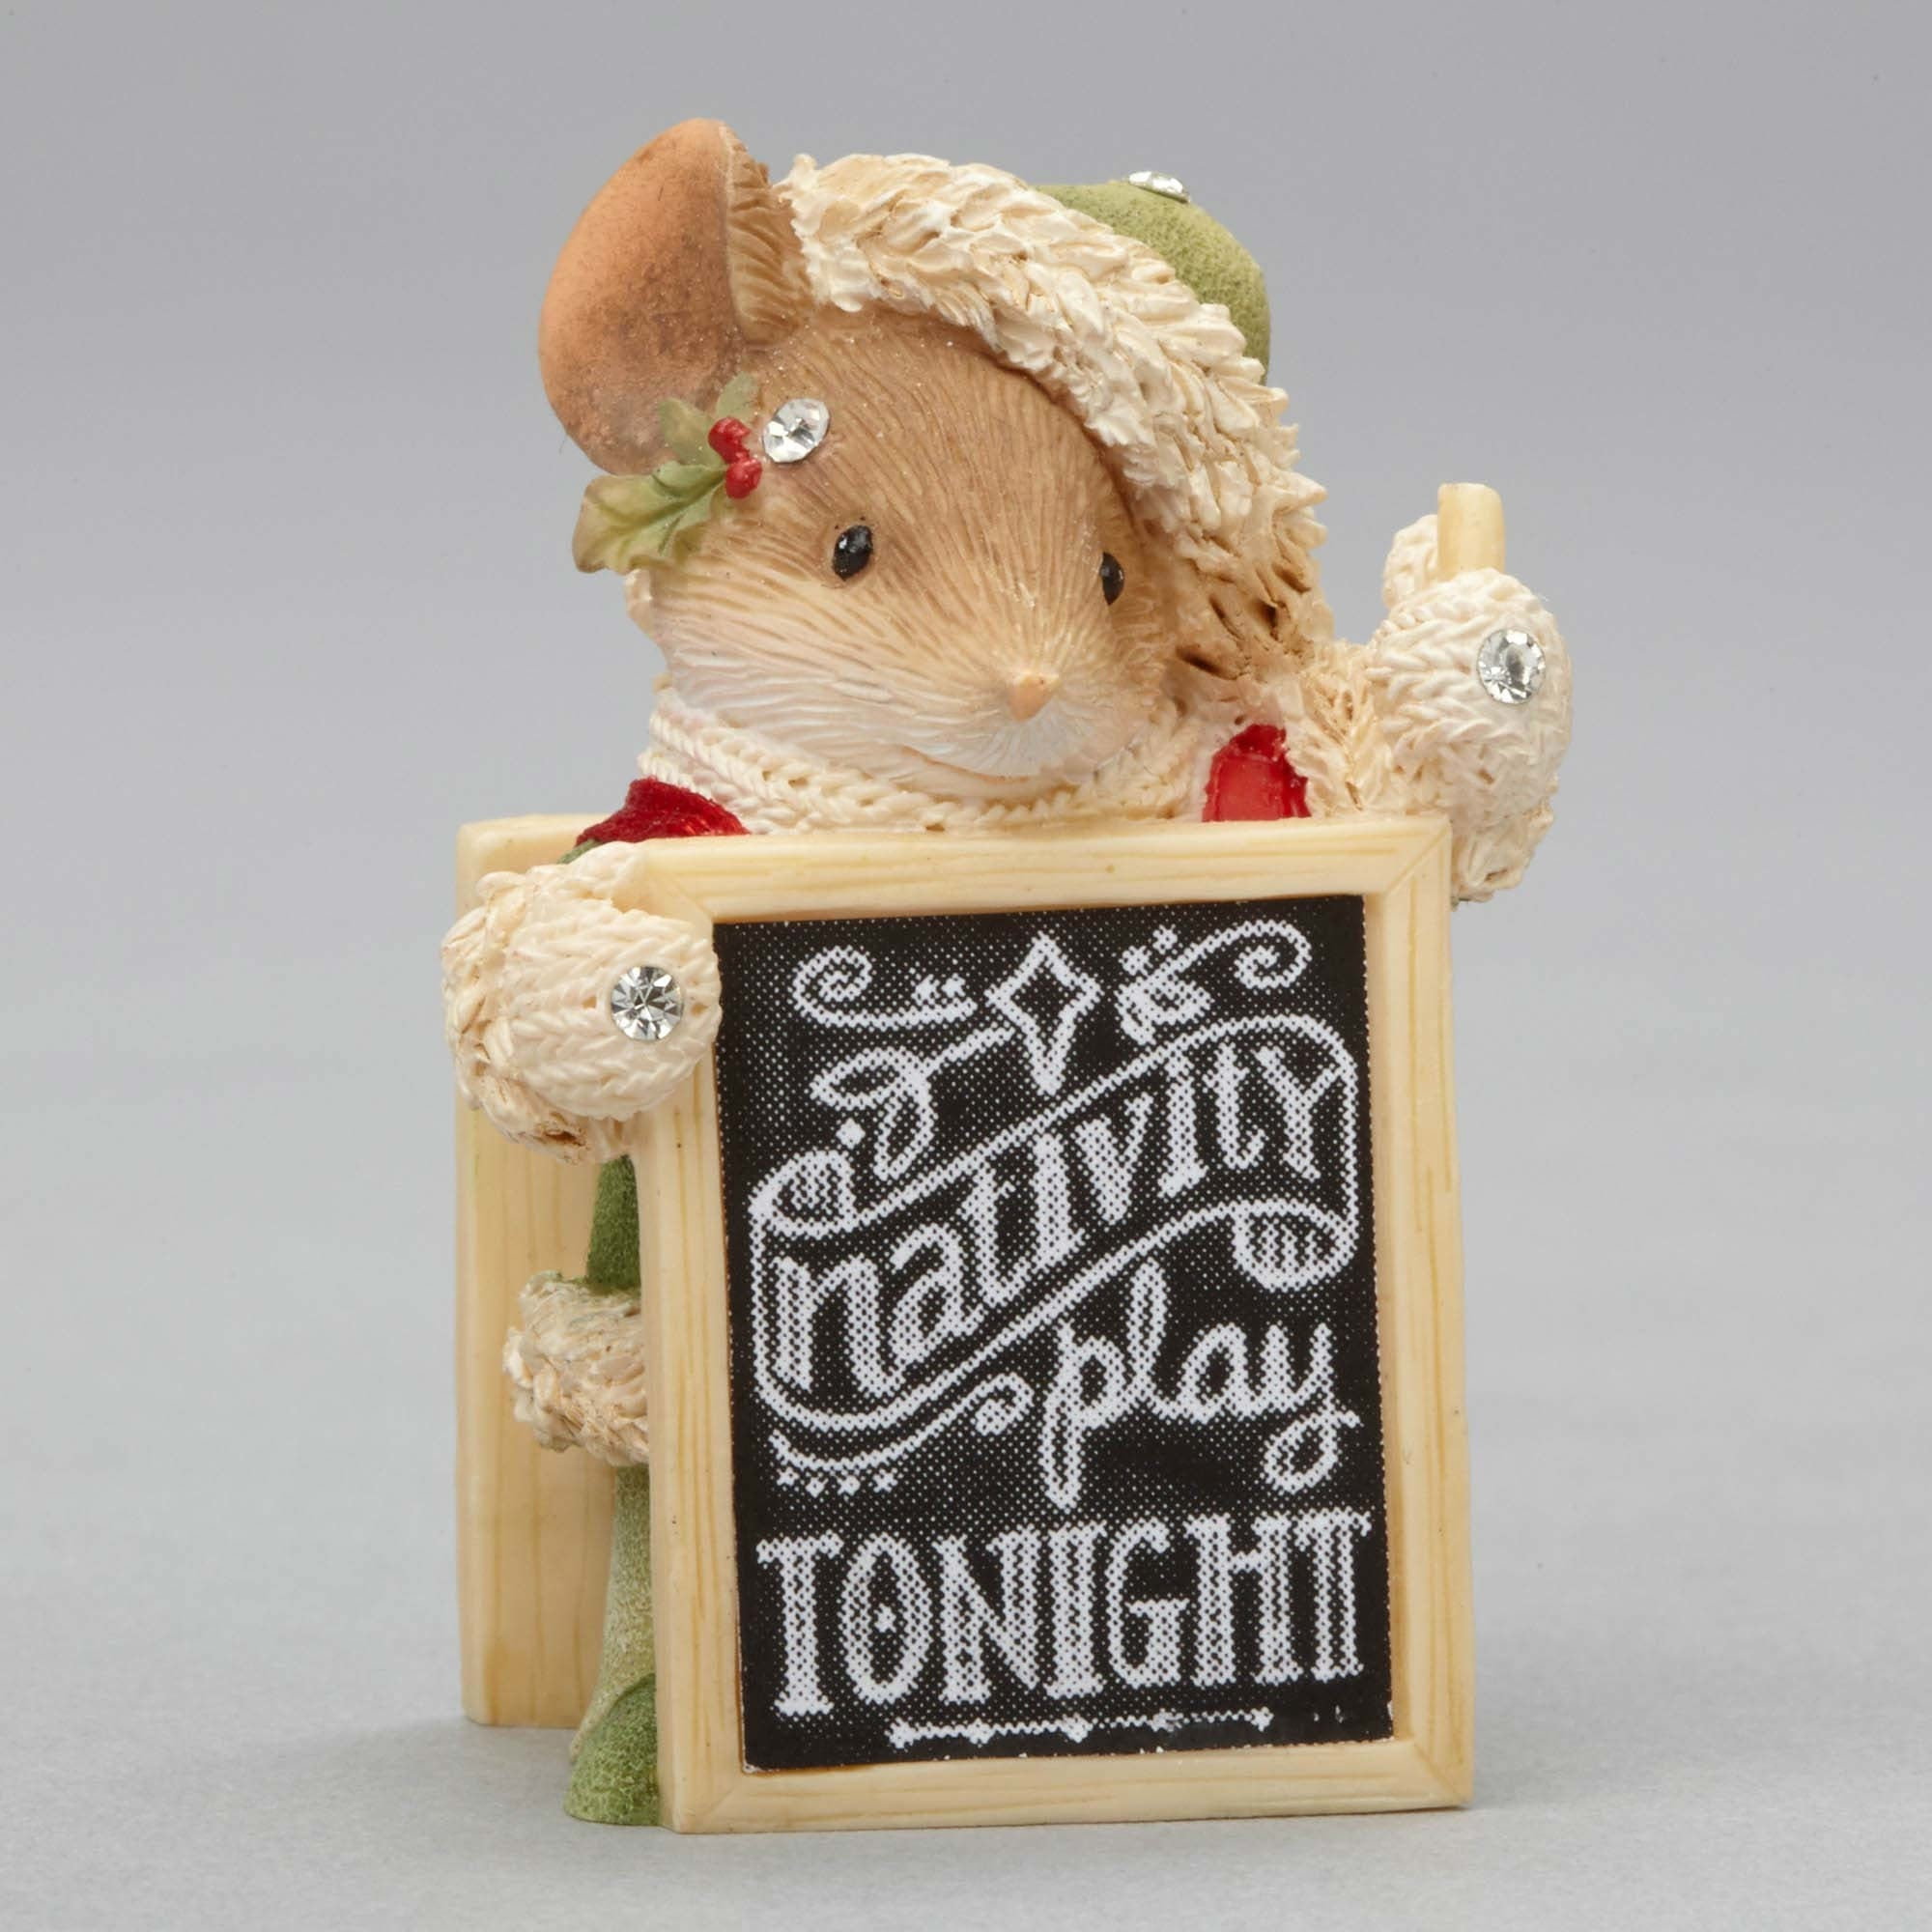 Mouse with Nativity Play Sign by Heart of Christmas